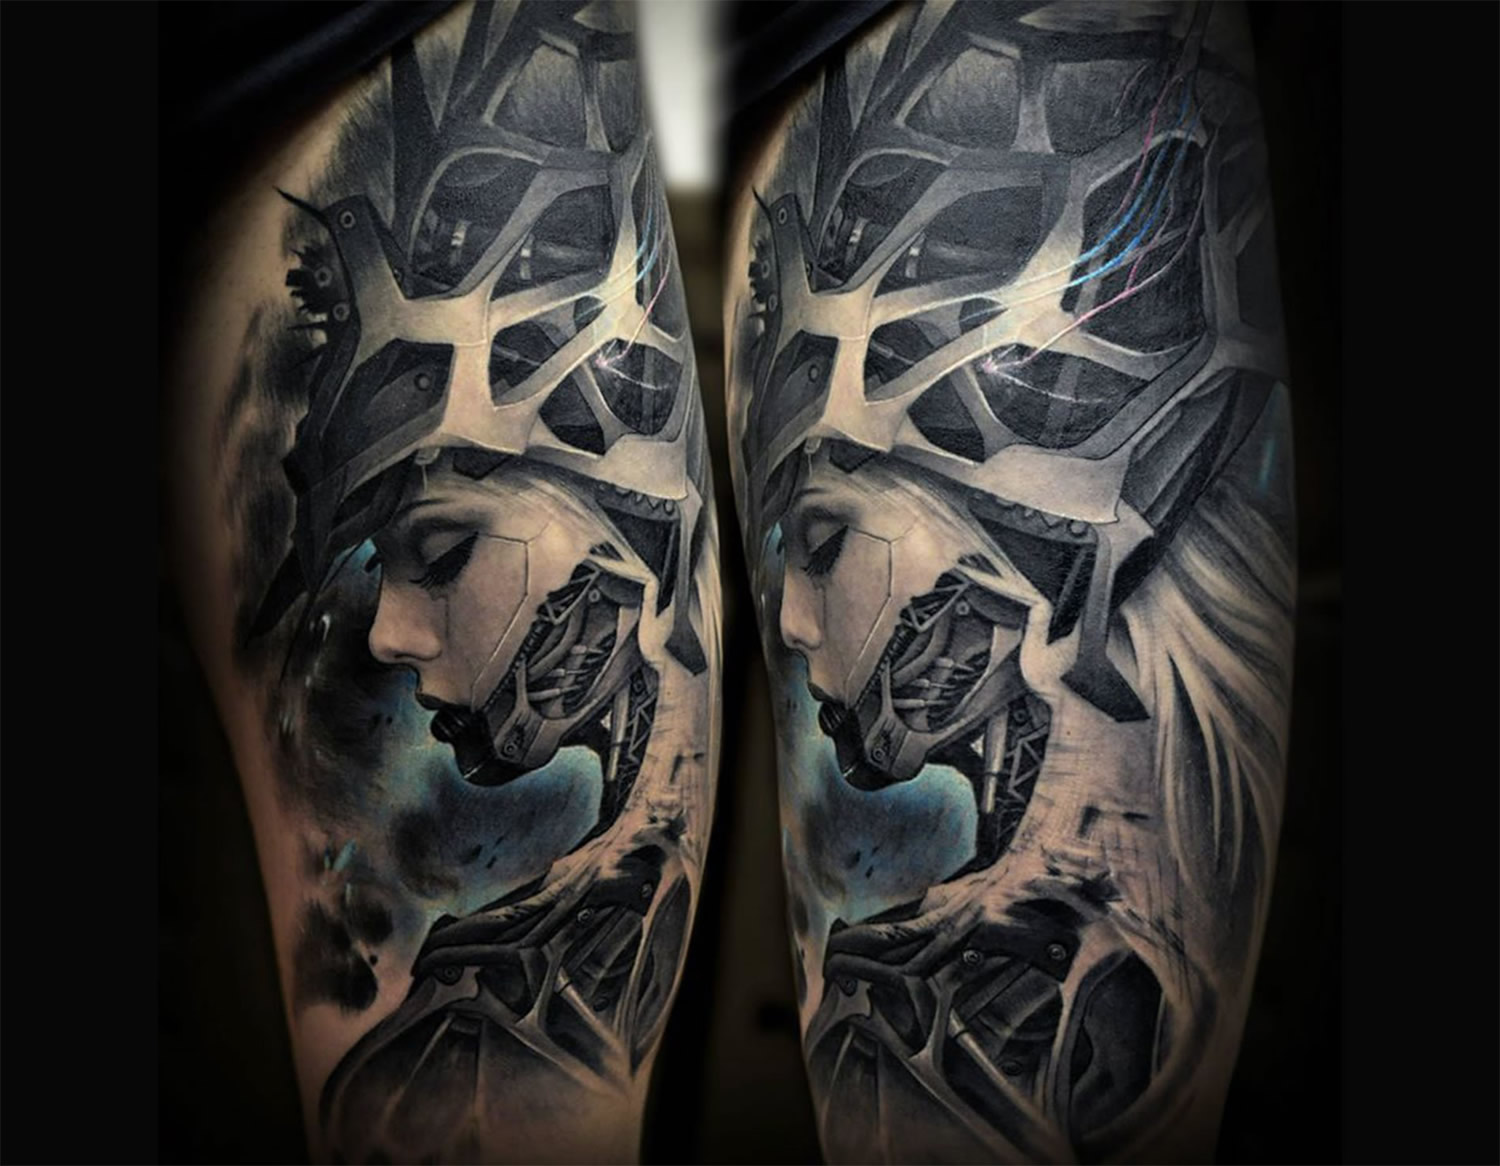 Impressive Biomechanical Girl Tattoo Design